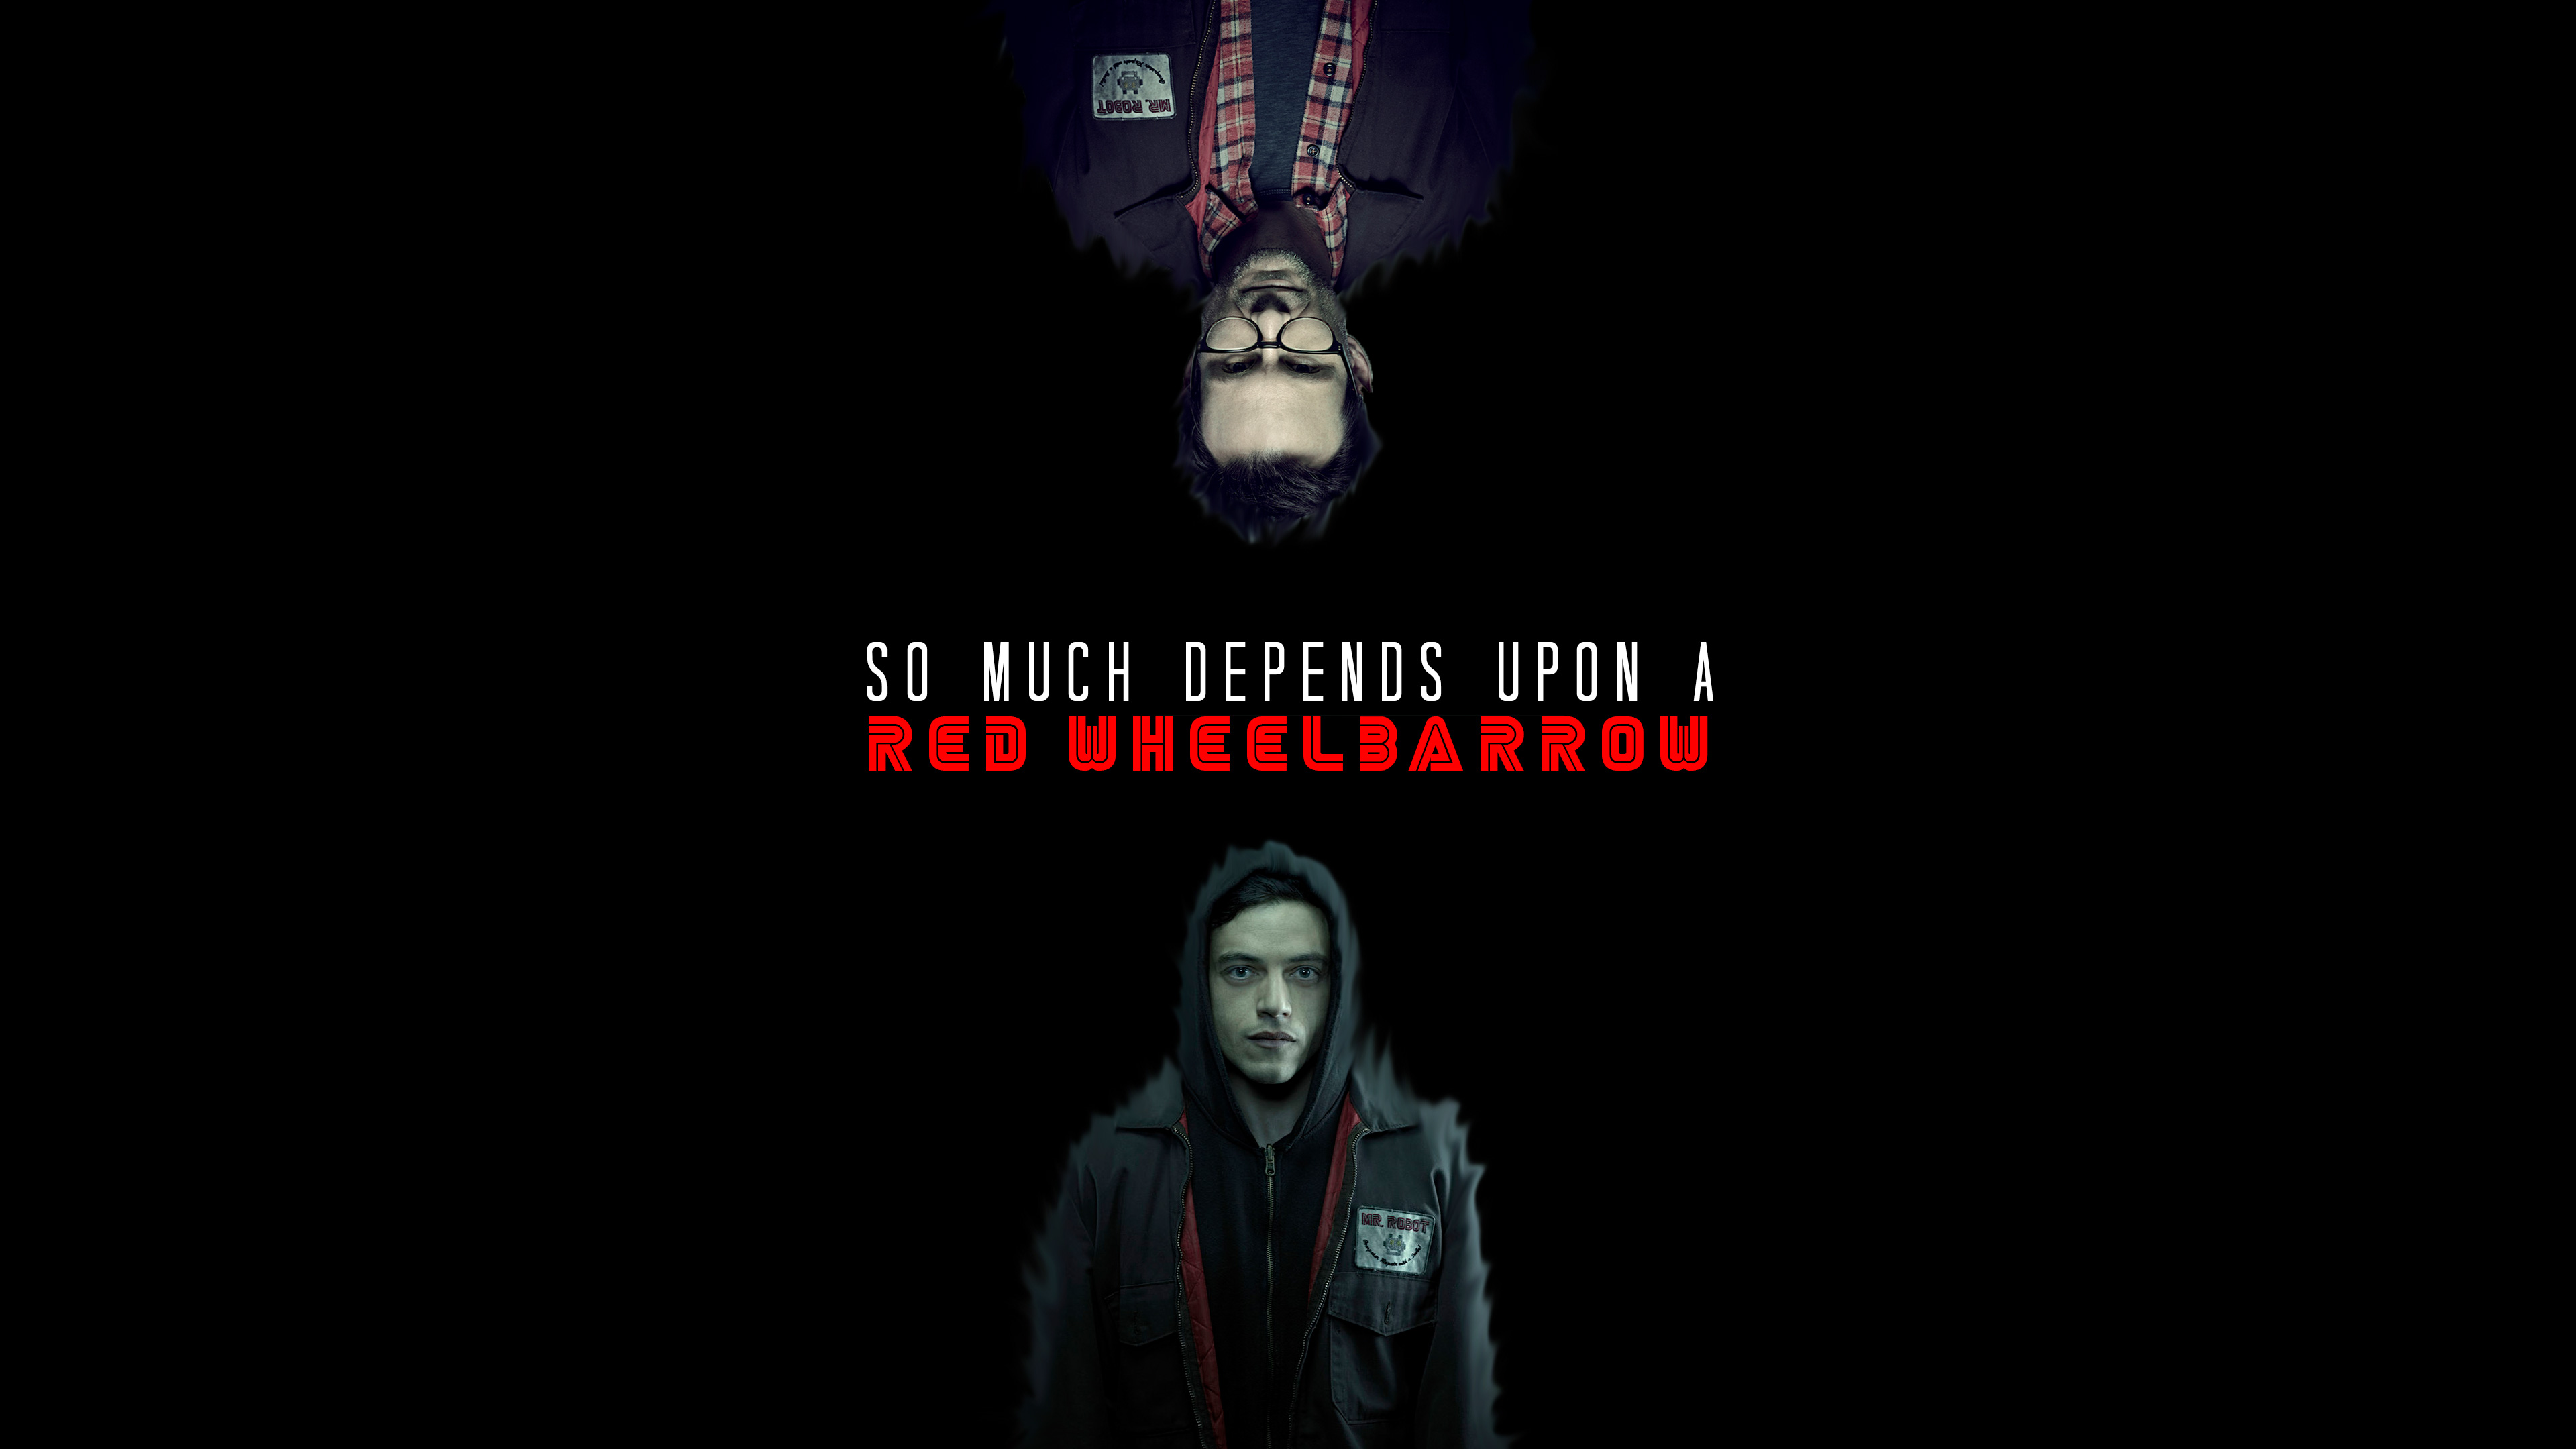 Mr robot tv series fanart hd tv shows 4k wallpapers - Tv series wallpaper 4k ...